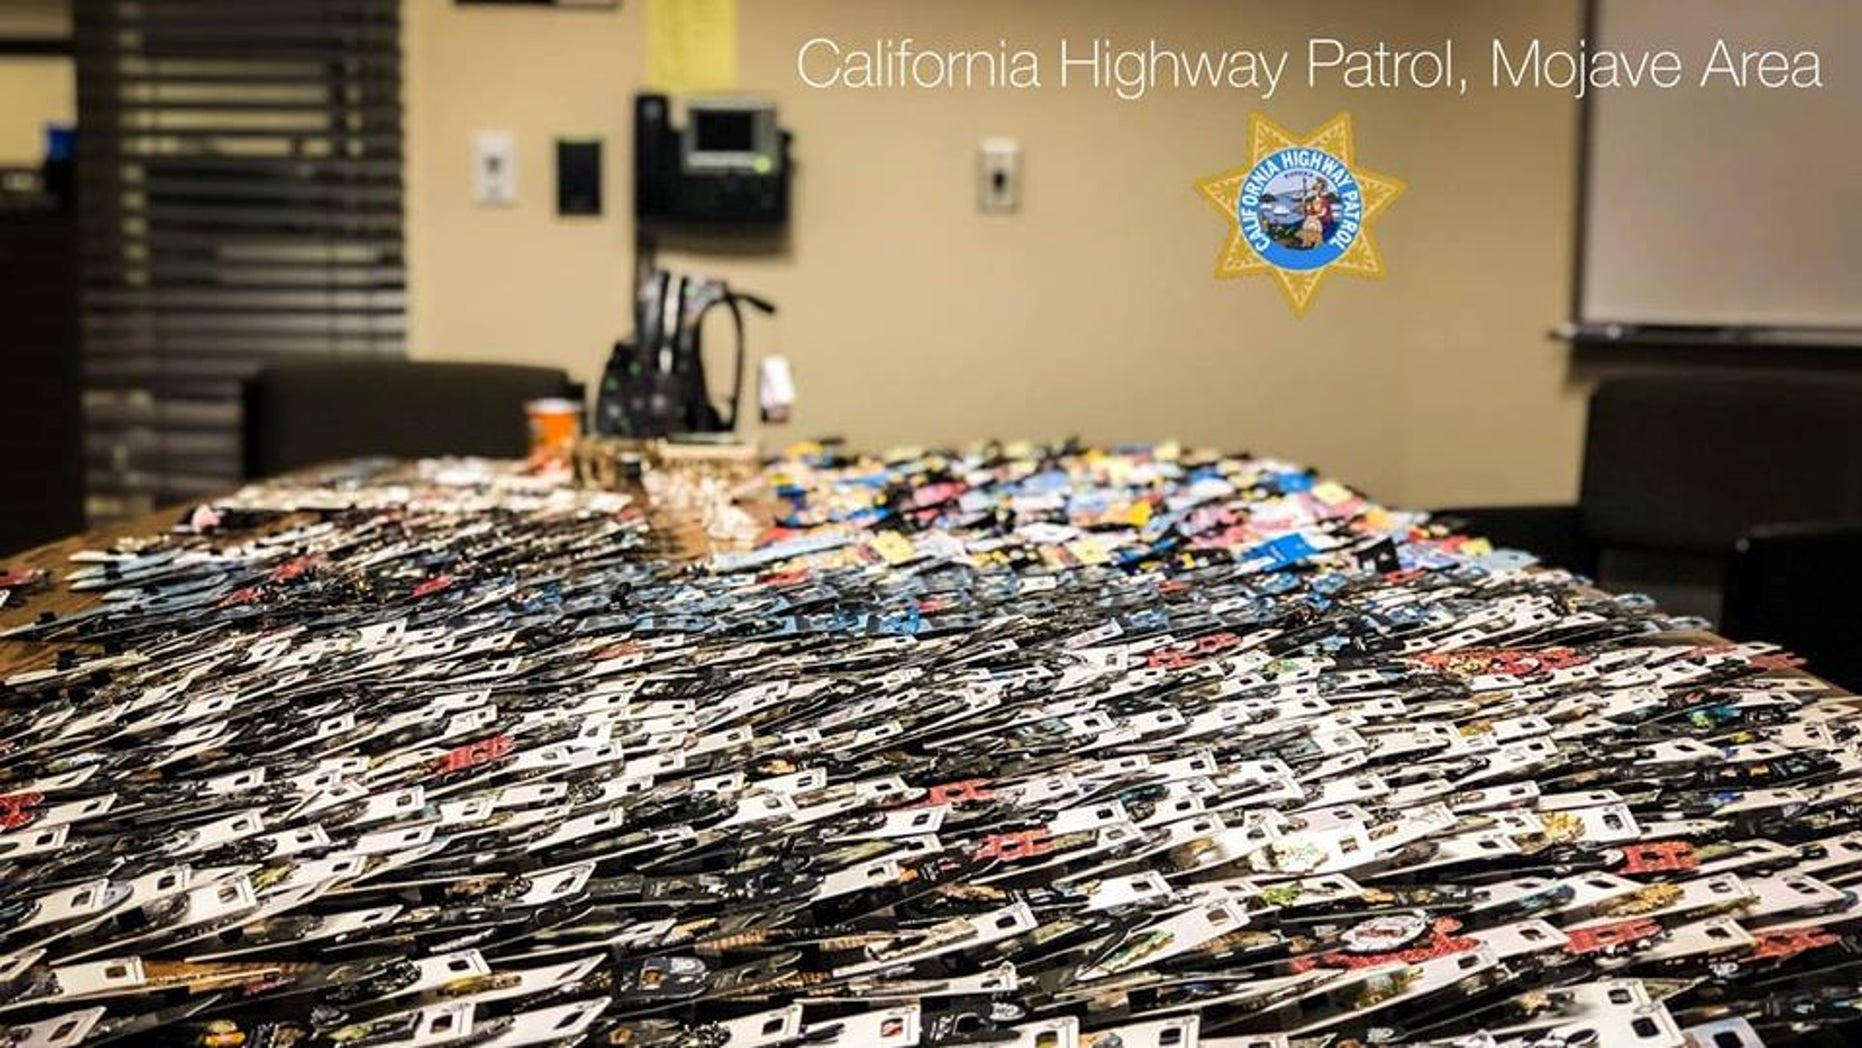 California Highway Patrol officers said they found $10,000 worth of stolen Disneyland merchandise when they pulled over a driver Friday.